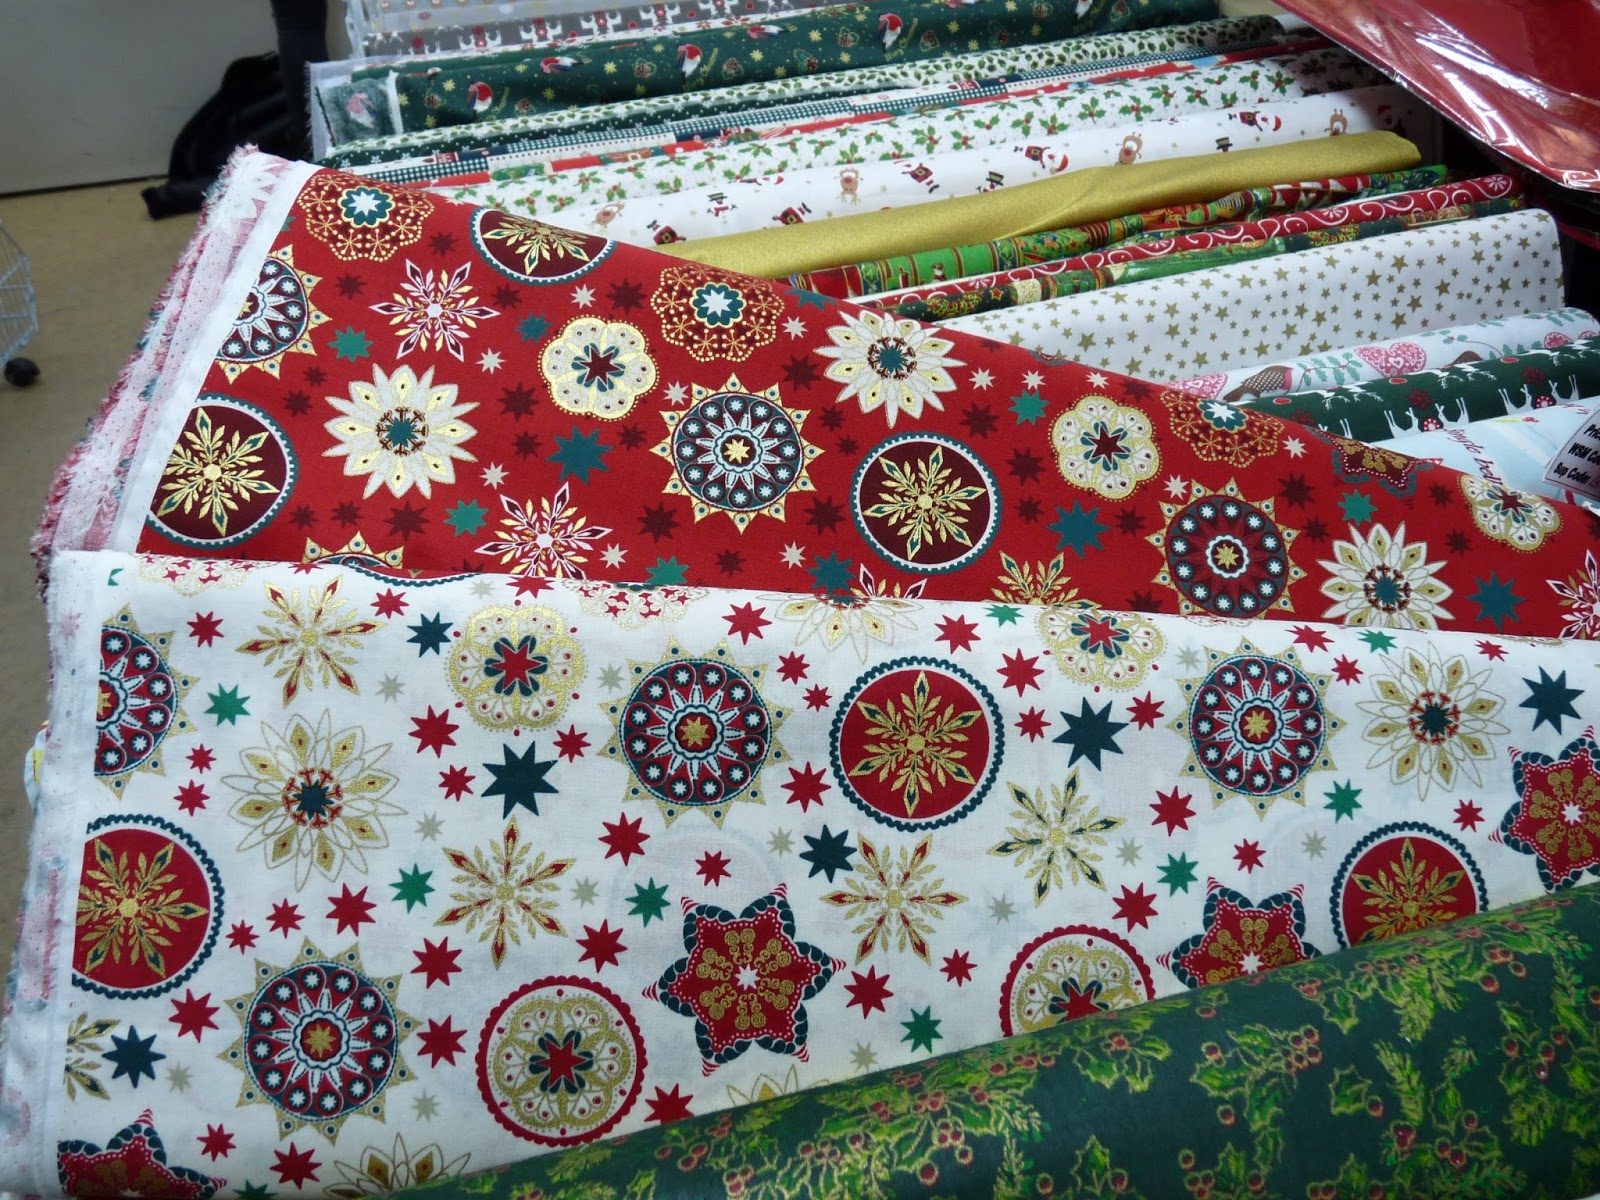 The London Dressmakers Club Christmas Fabric For Gifts And Garments